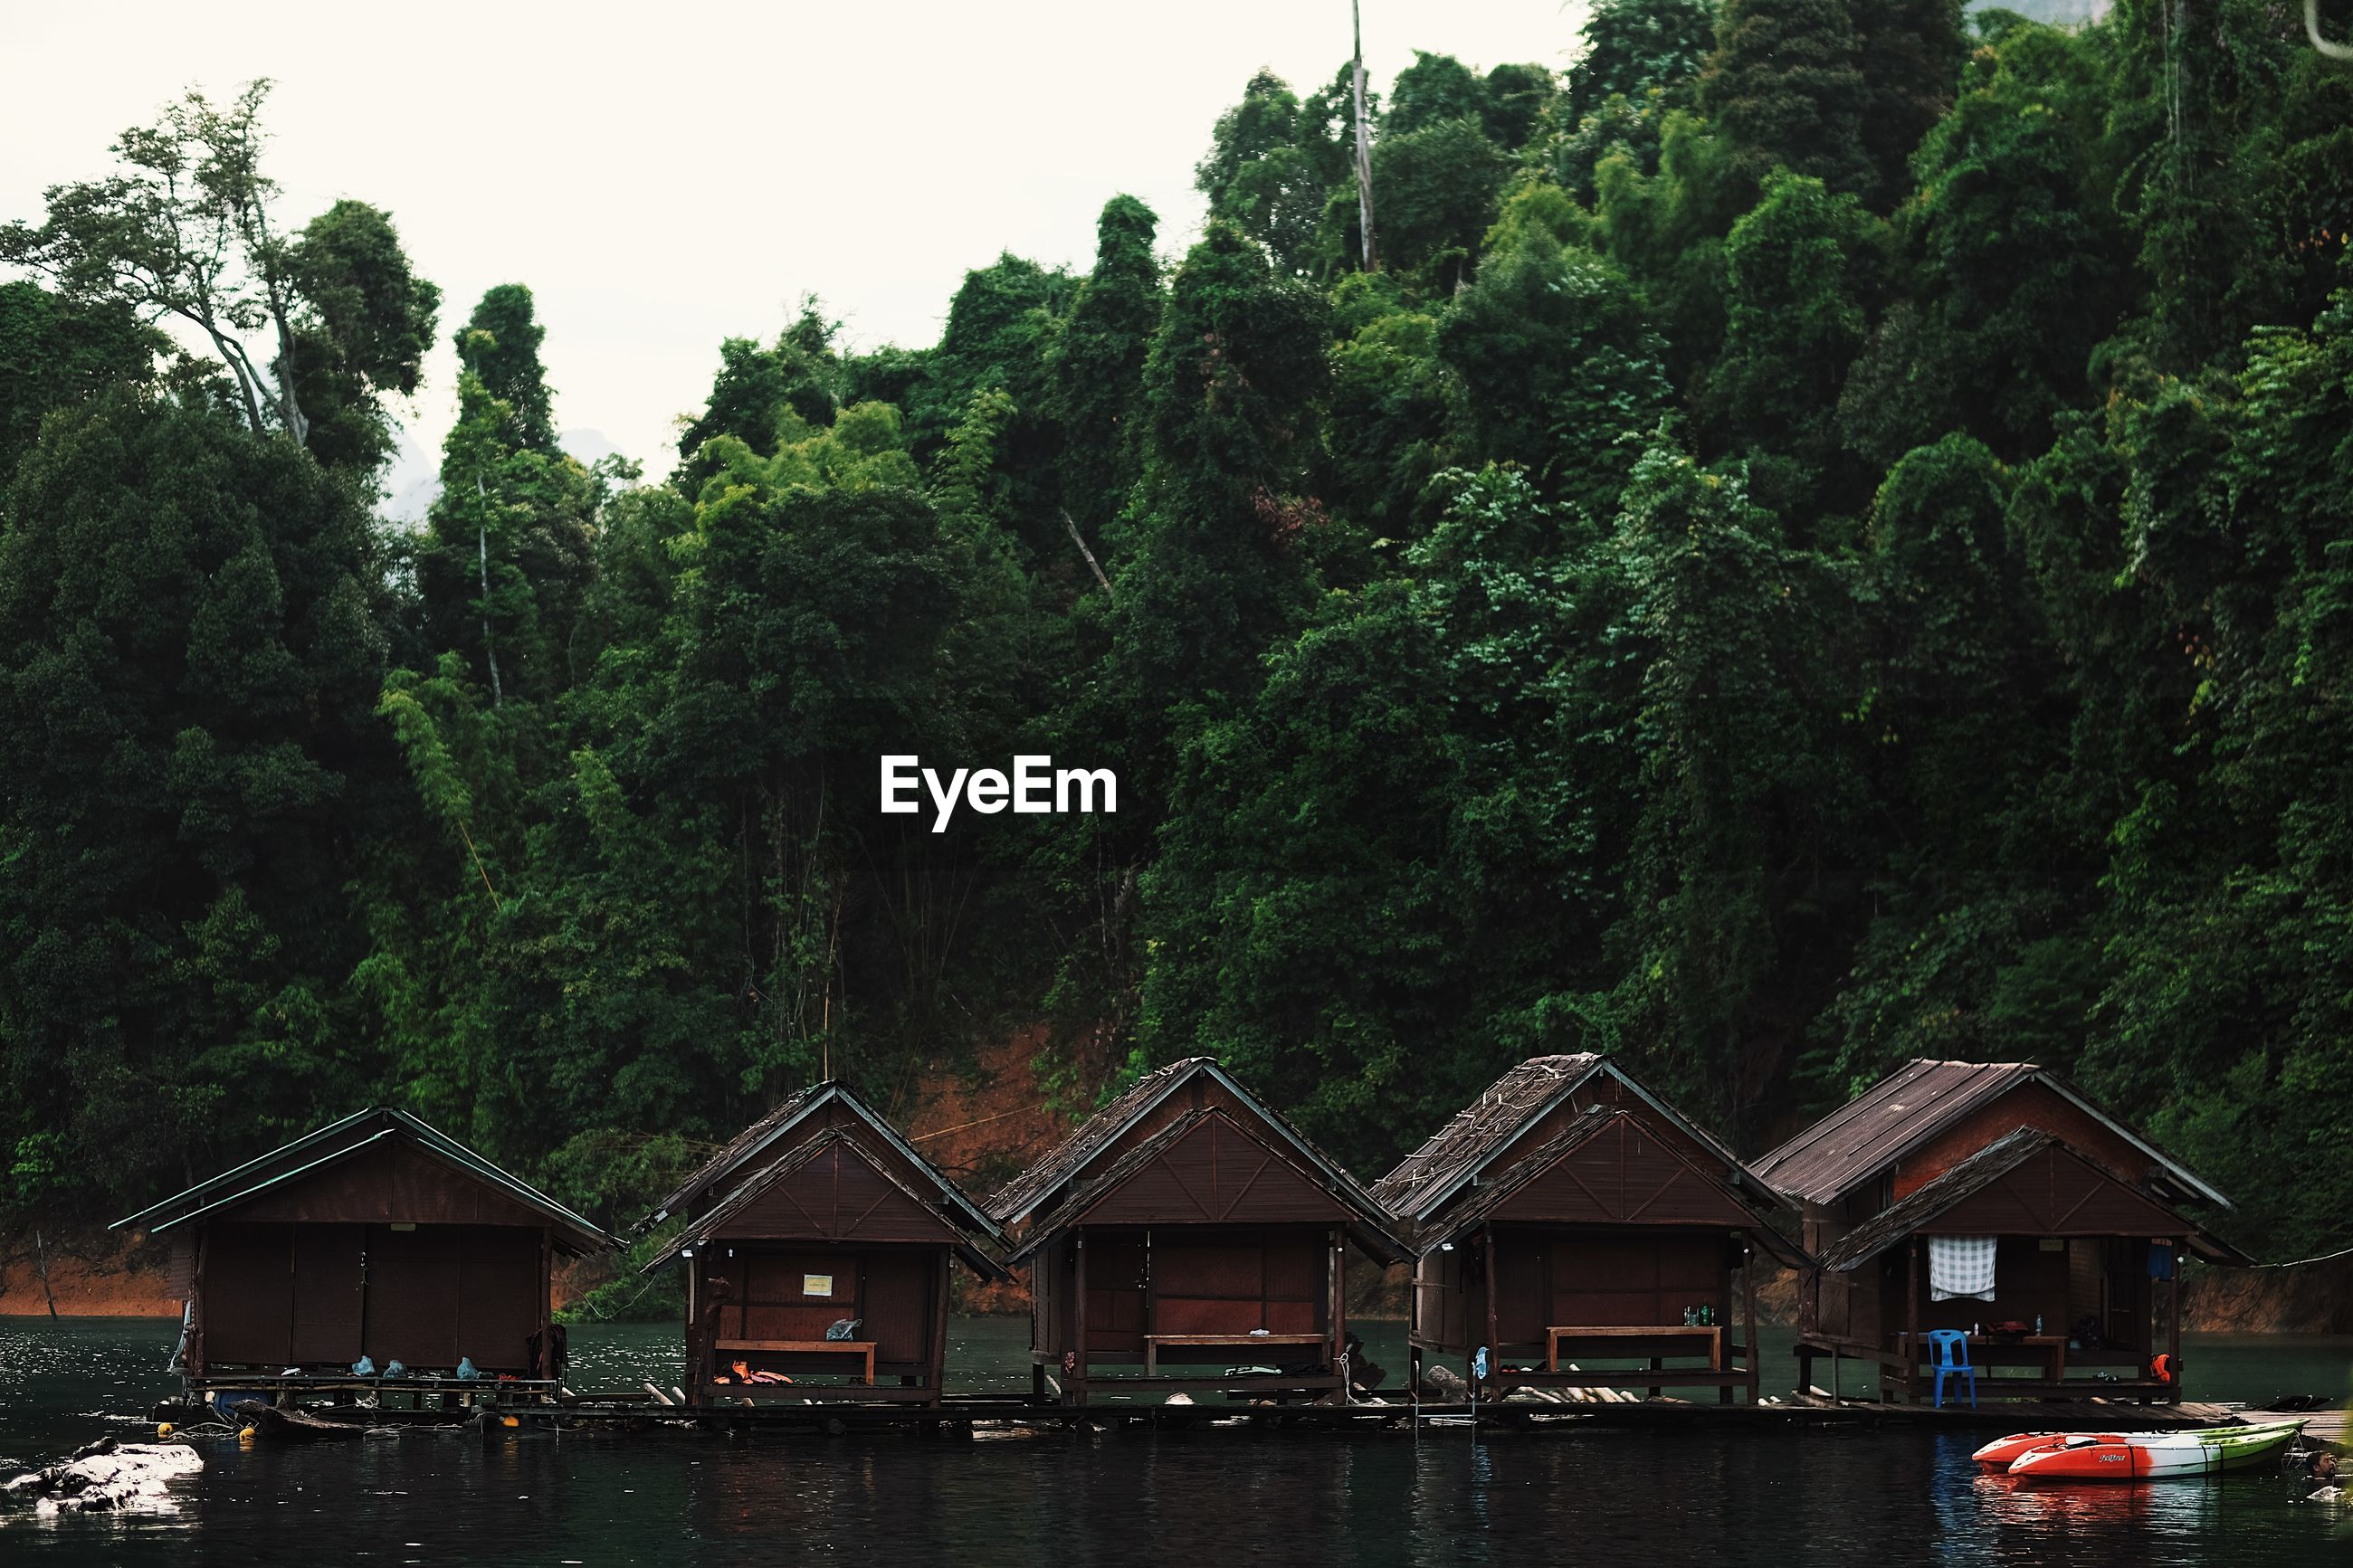 SCENIC VIEW OF LAKE BY TREES AND BUILDINGS